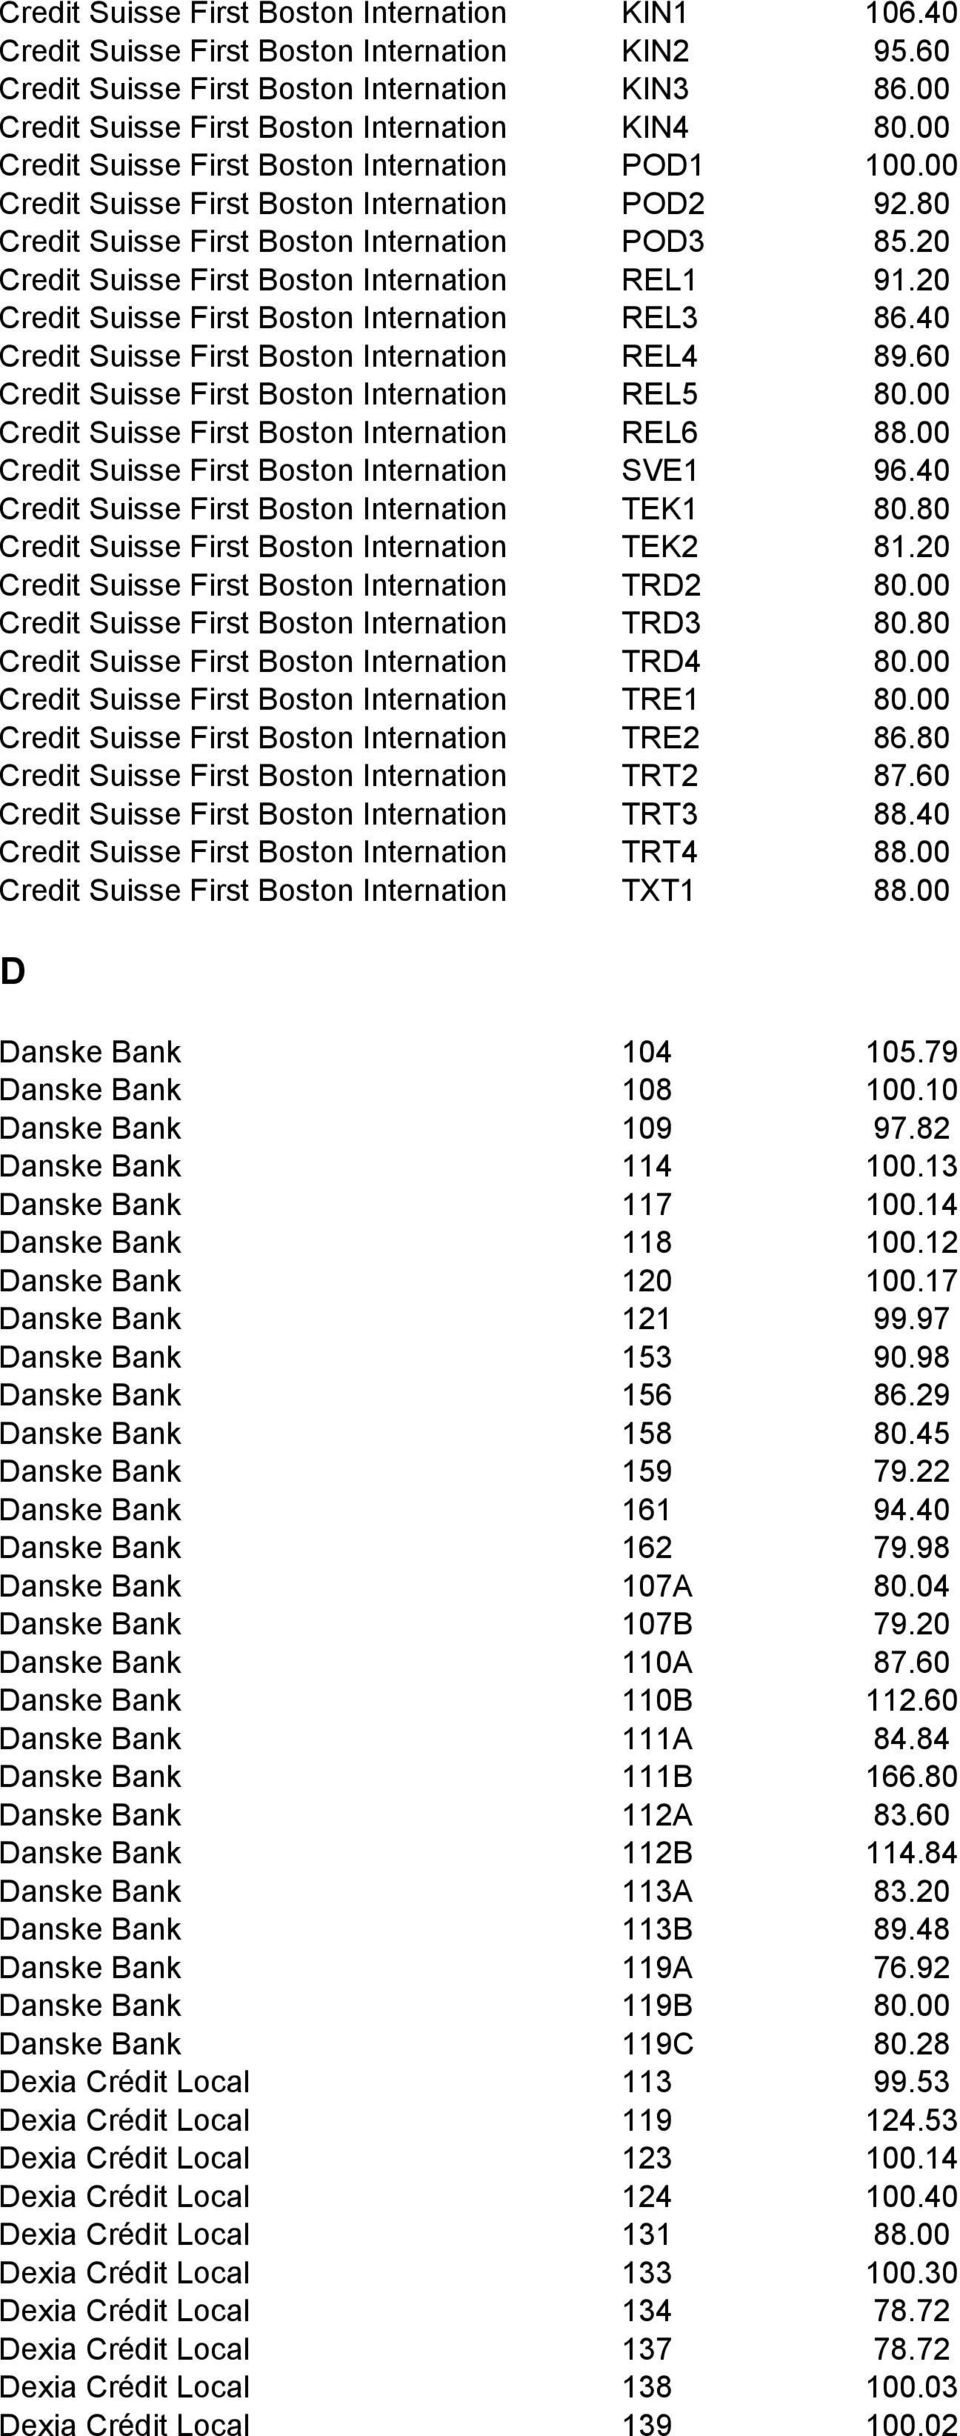 20 Credit Suisse First Boston Internation REL1 91.20 Credit Suisse First Boston Internation REL3 86.40 Credit Suisse First Boston Internation REL4 89.60 Credit Suisse First Boston Internation REL5 80.